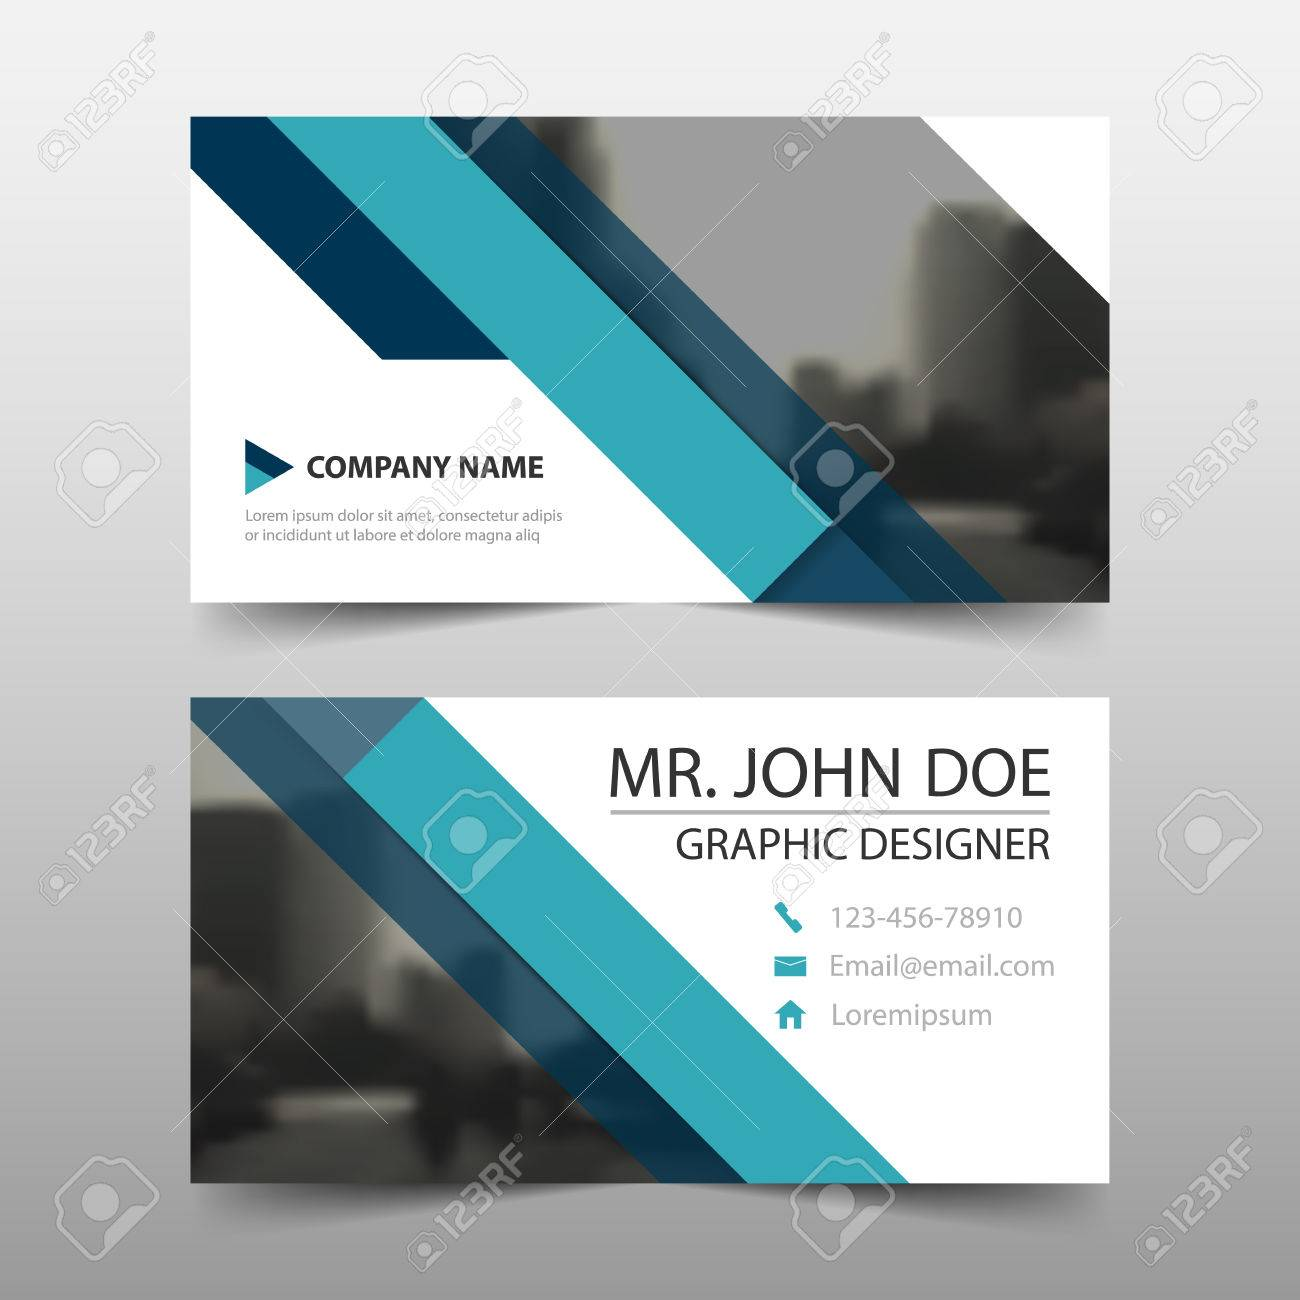 Blue triangle corporate business card name card template blue triangle corporate business card name card template horizontal simple clean layout design template colourmoves